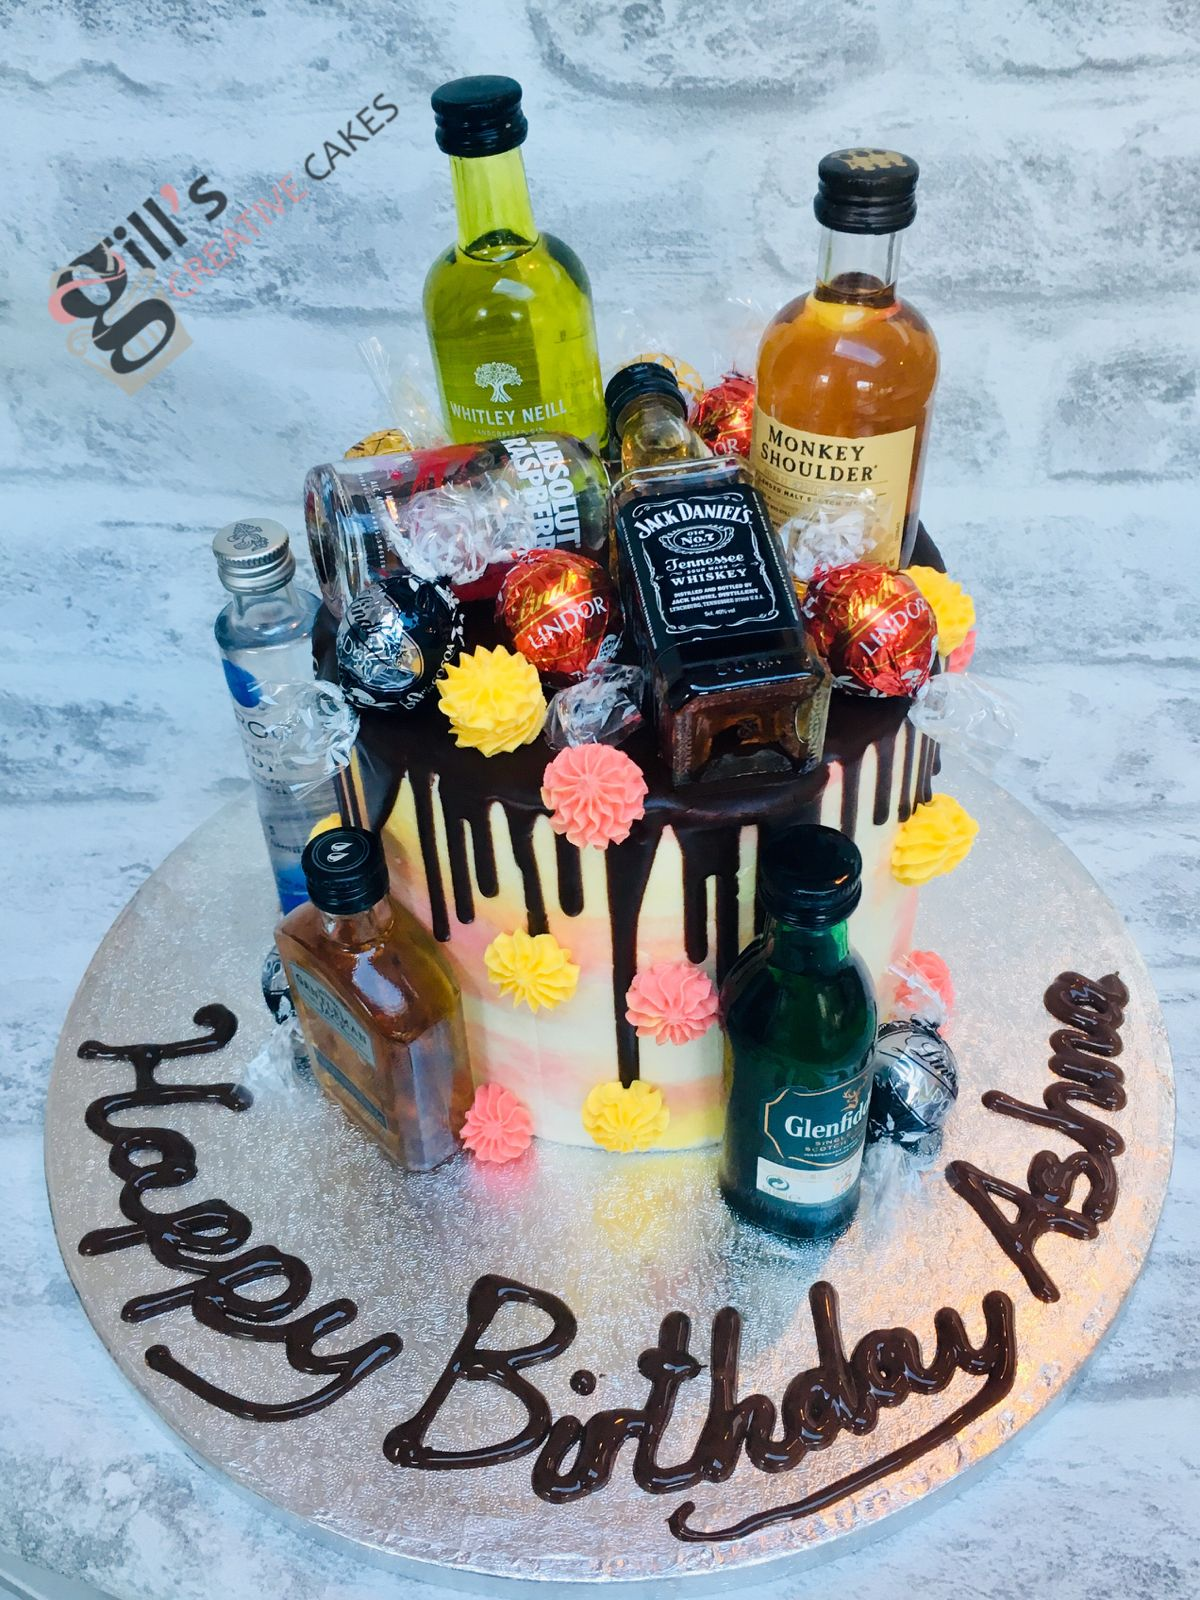 Remarkable Chocolate Drip Cake Decorated With Alcohol Miniatures Alcohol Funny Birthday Cards Online Elaedamsfinfo